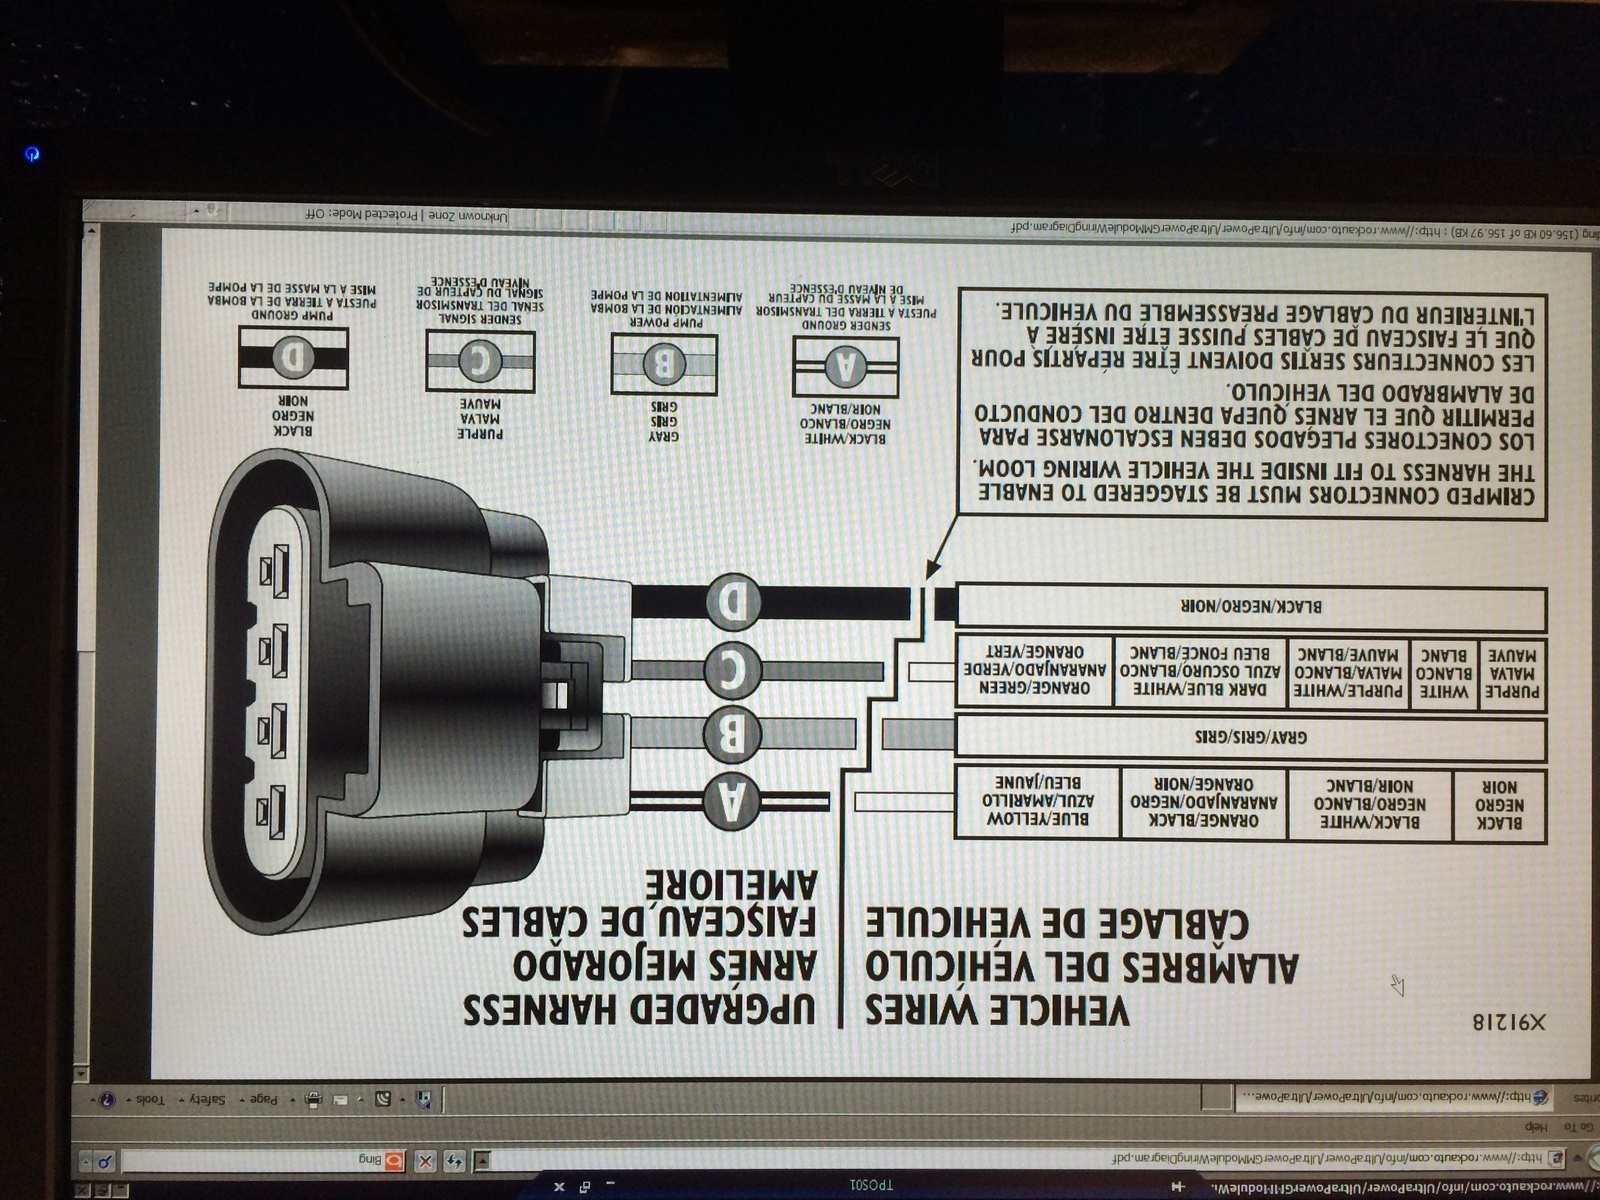 Blazer Fuel Pump Replacement On Wiring Diagram For A Submersible Pump